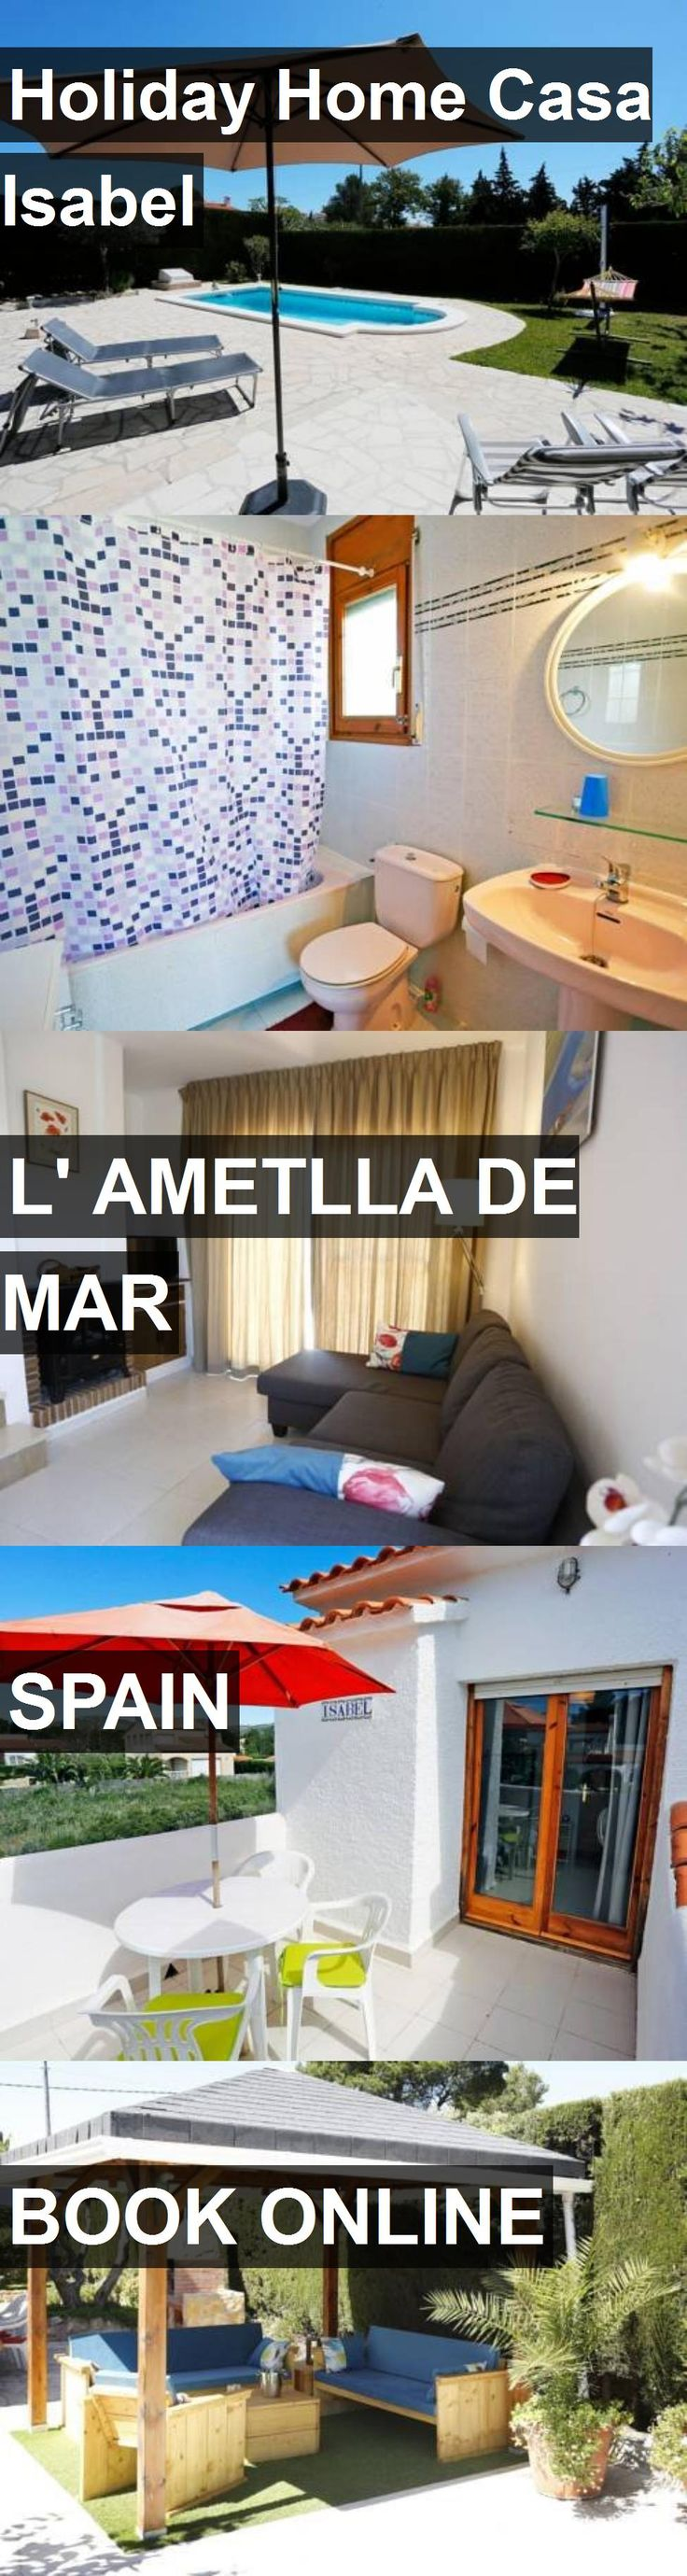 Hotel Holiday Home Casa Isabel in l' Ametlla de Mar, Spain. For more information, photos, reviews and best prices please follow the link. #Spain #l'AmetlladeMar #travel #vacation #hotel